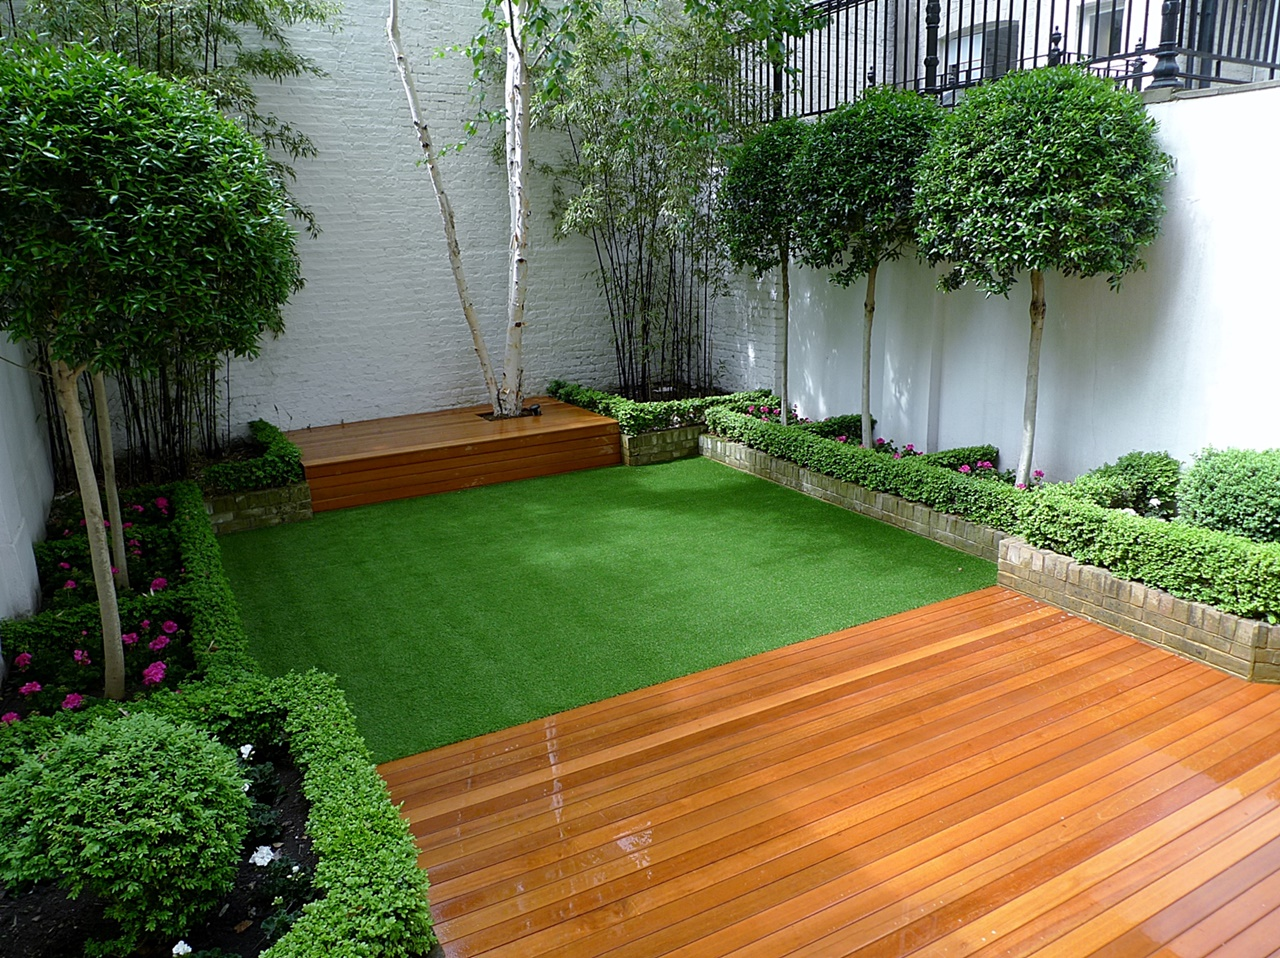 Screen london garden design part 2 for Images of garden decking